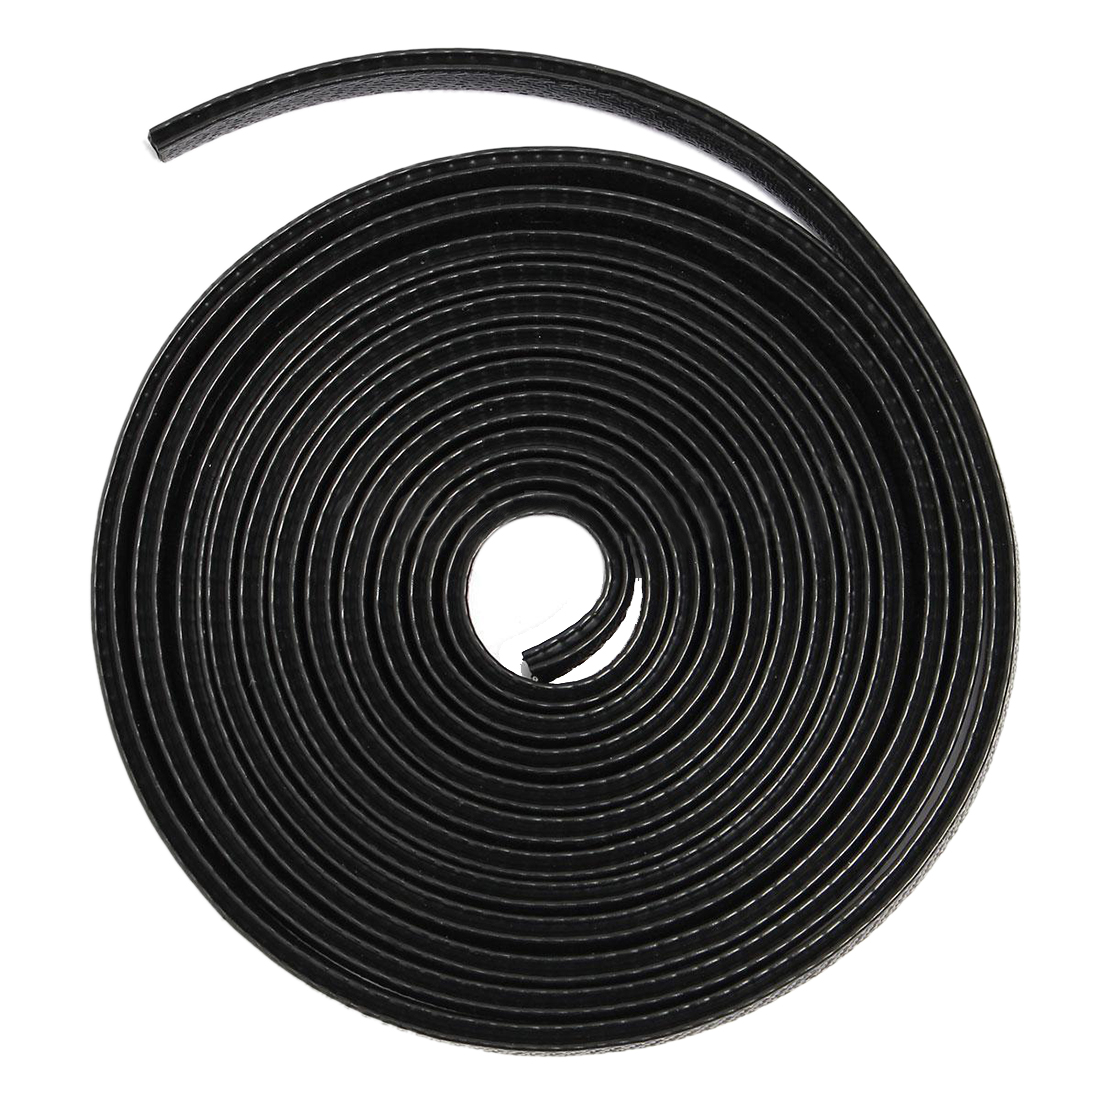 Active Car Boat 4m U Type Rubber Sealing Strip Black Soft And Antislippery